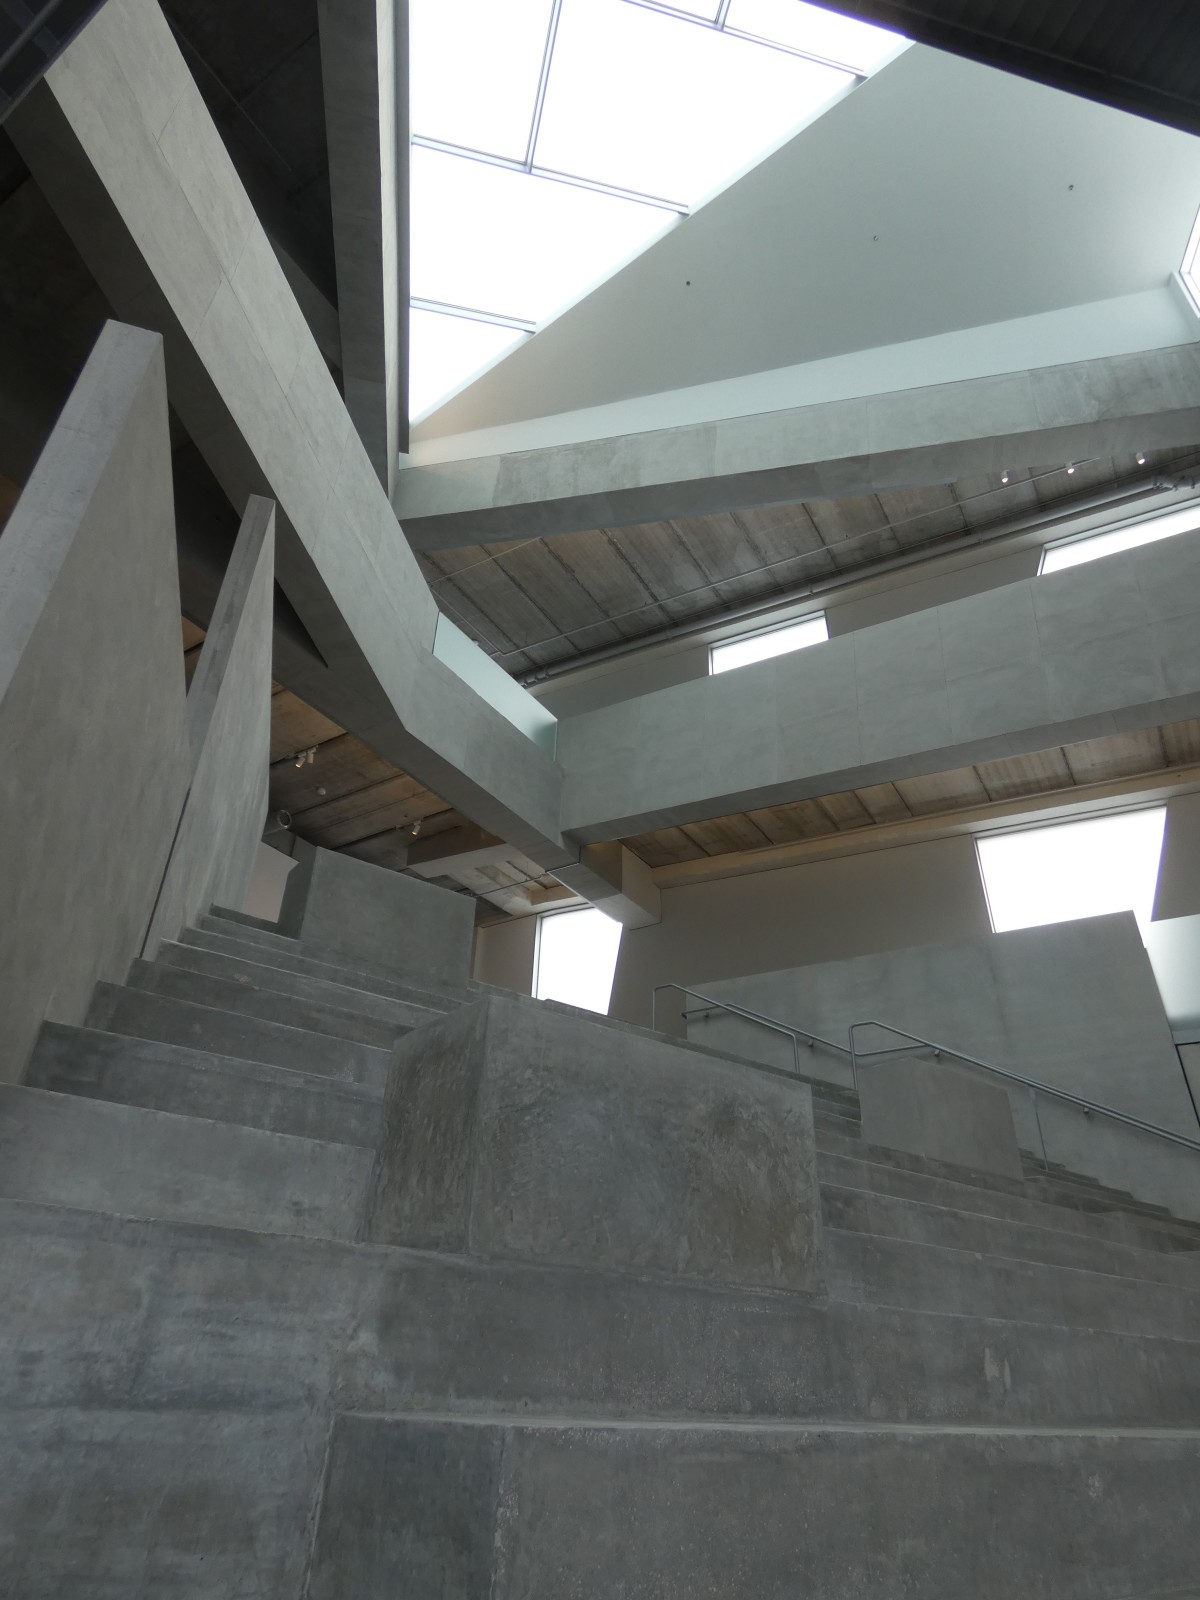 Glassell School central stairway